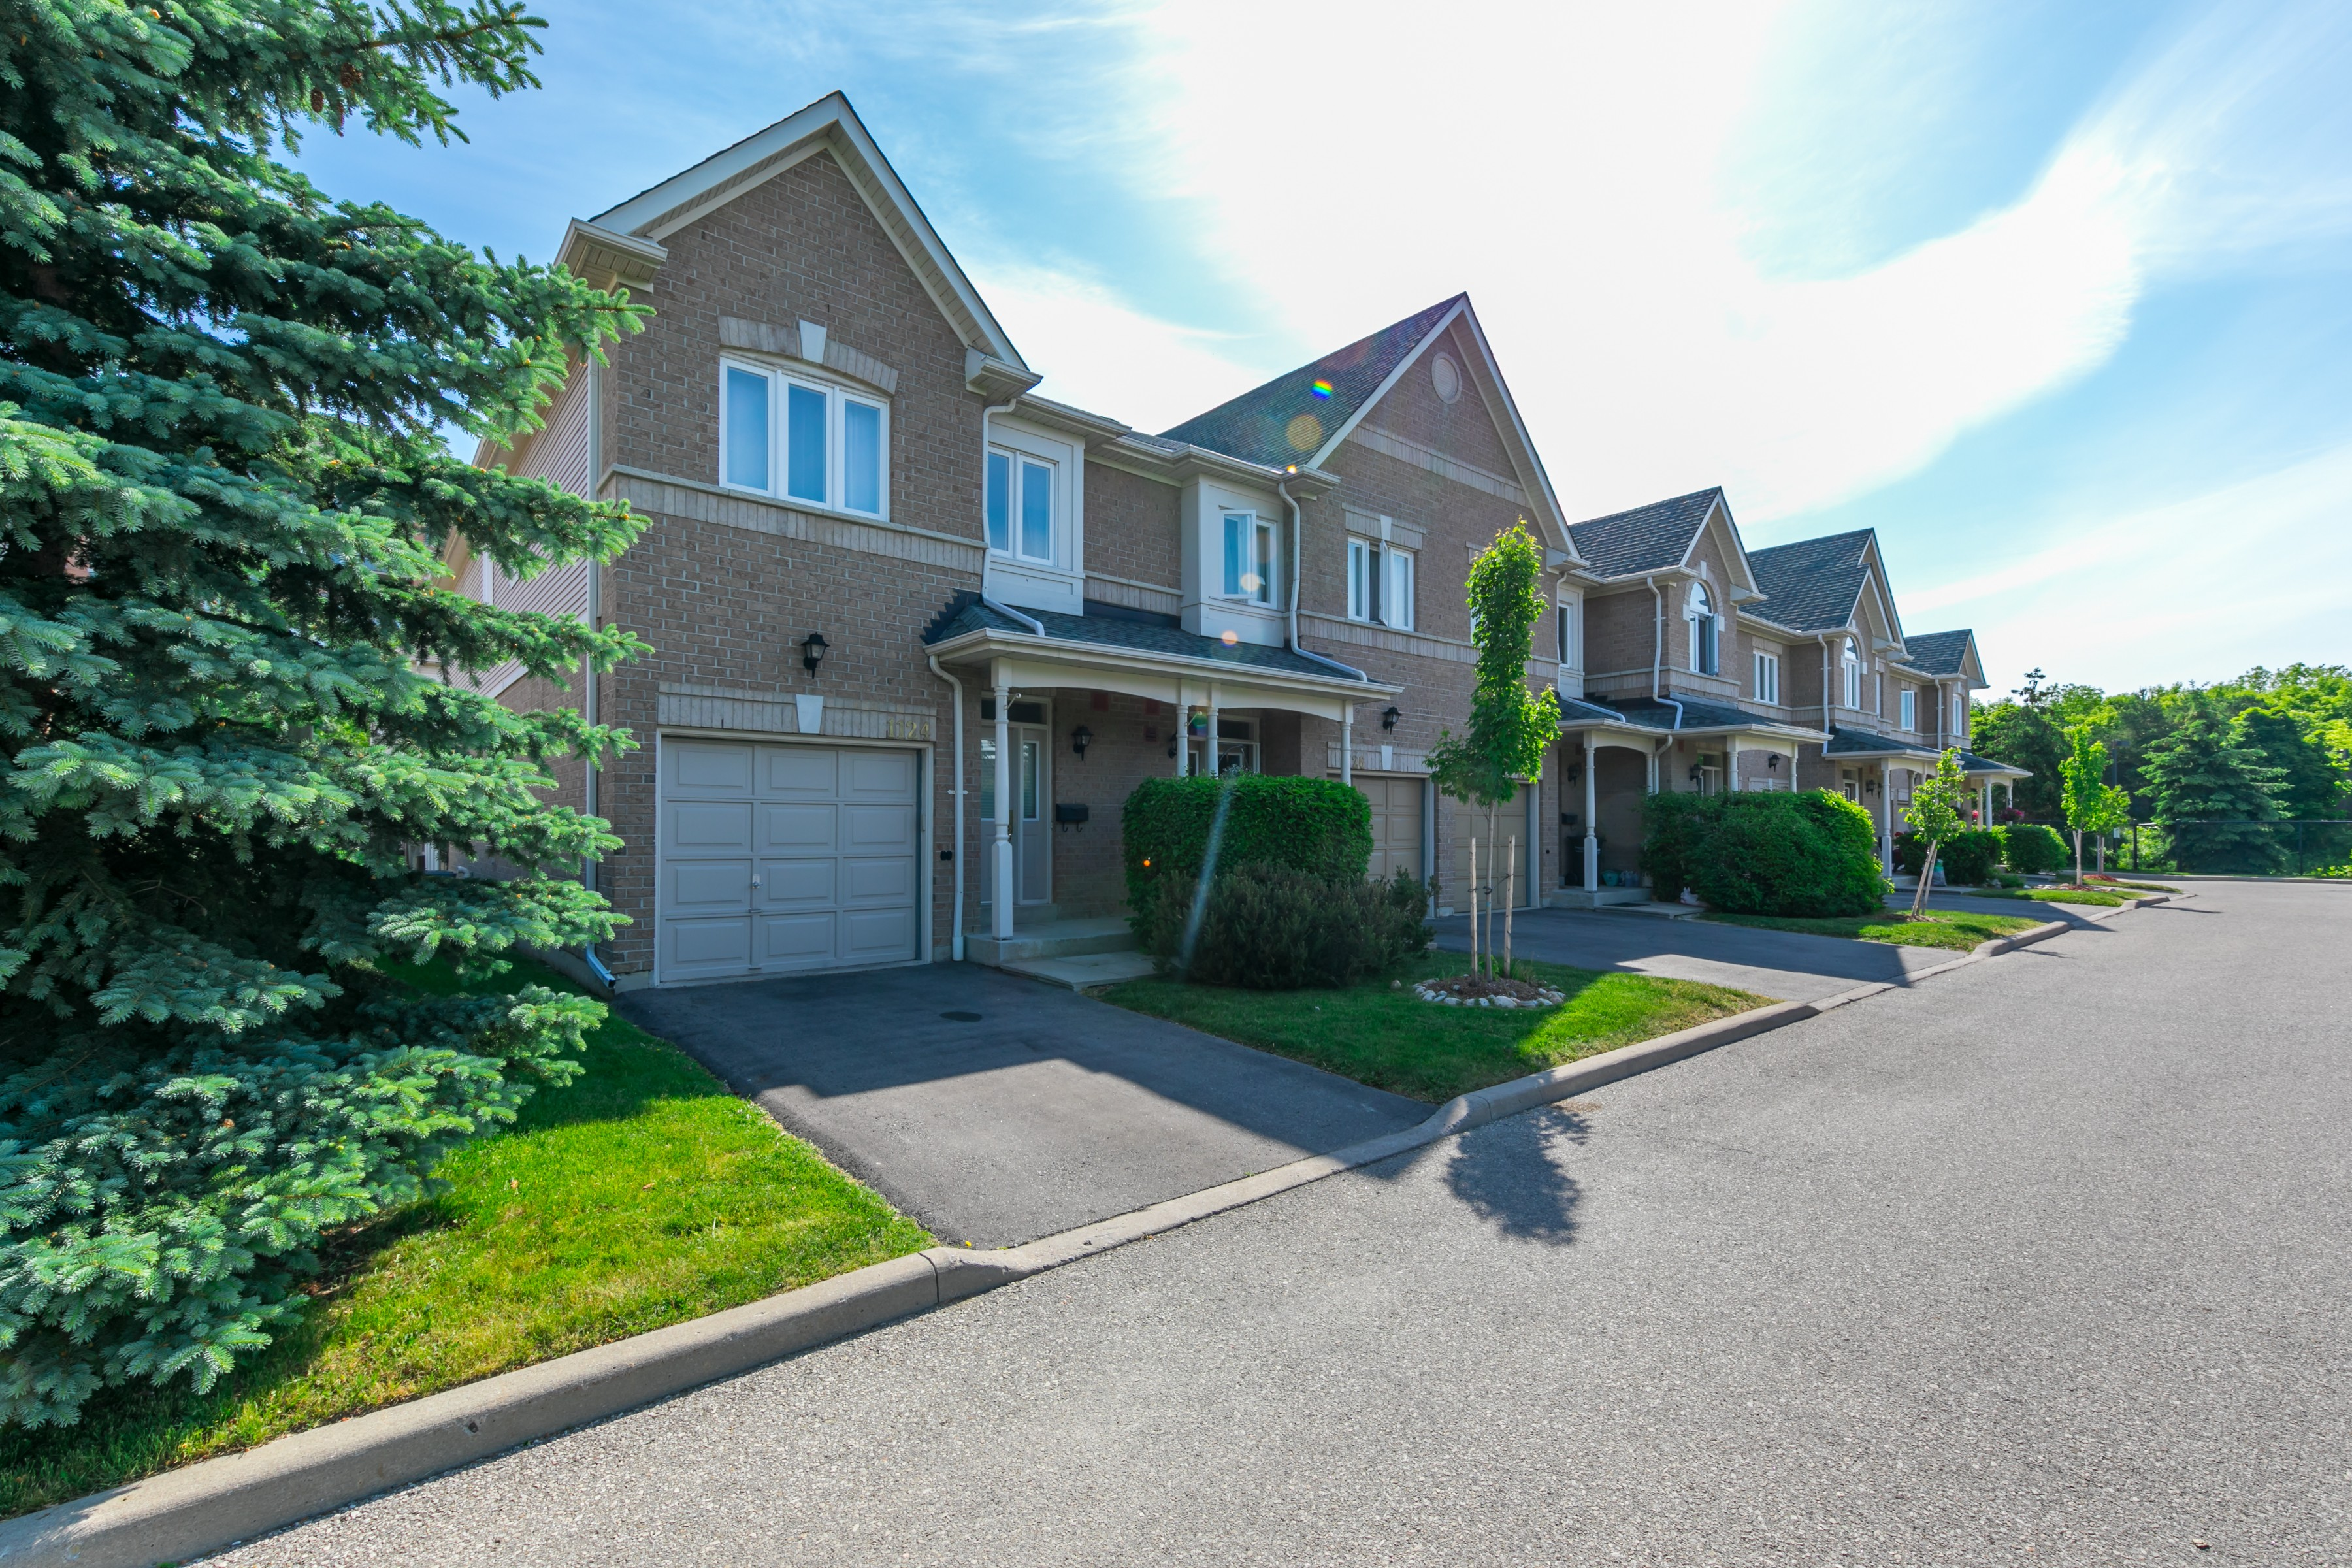 1103 Lower Village Crescent Townhouses at 1183 Lower Village Crescent, Mississauga 0